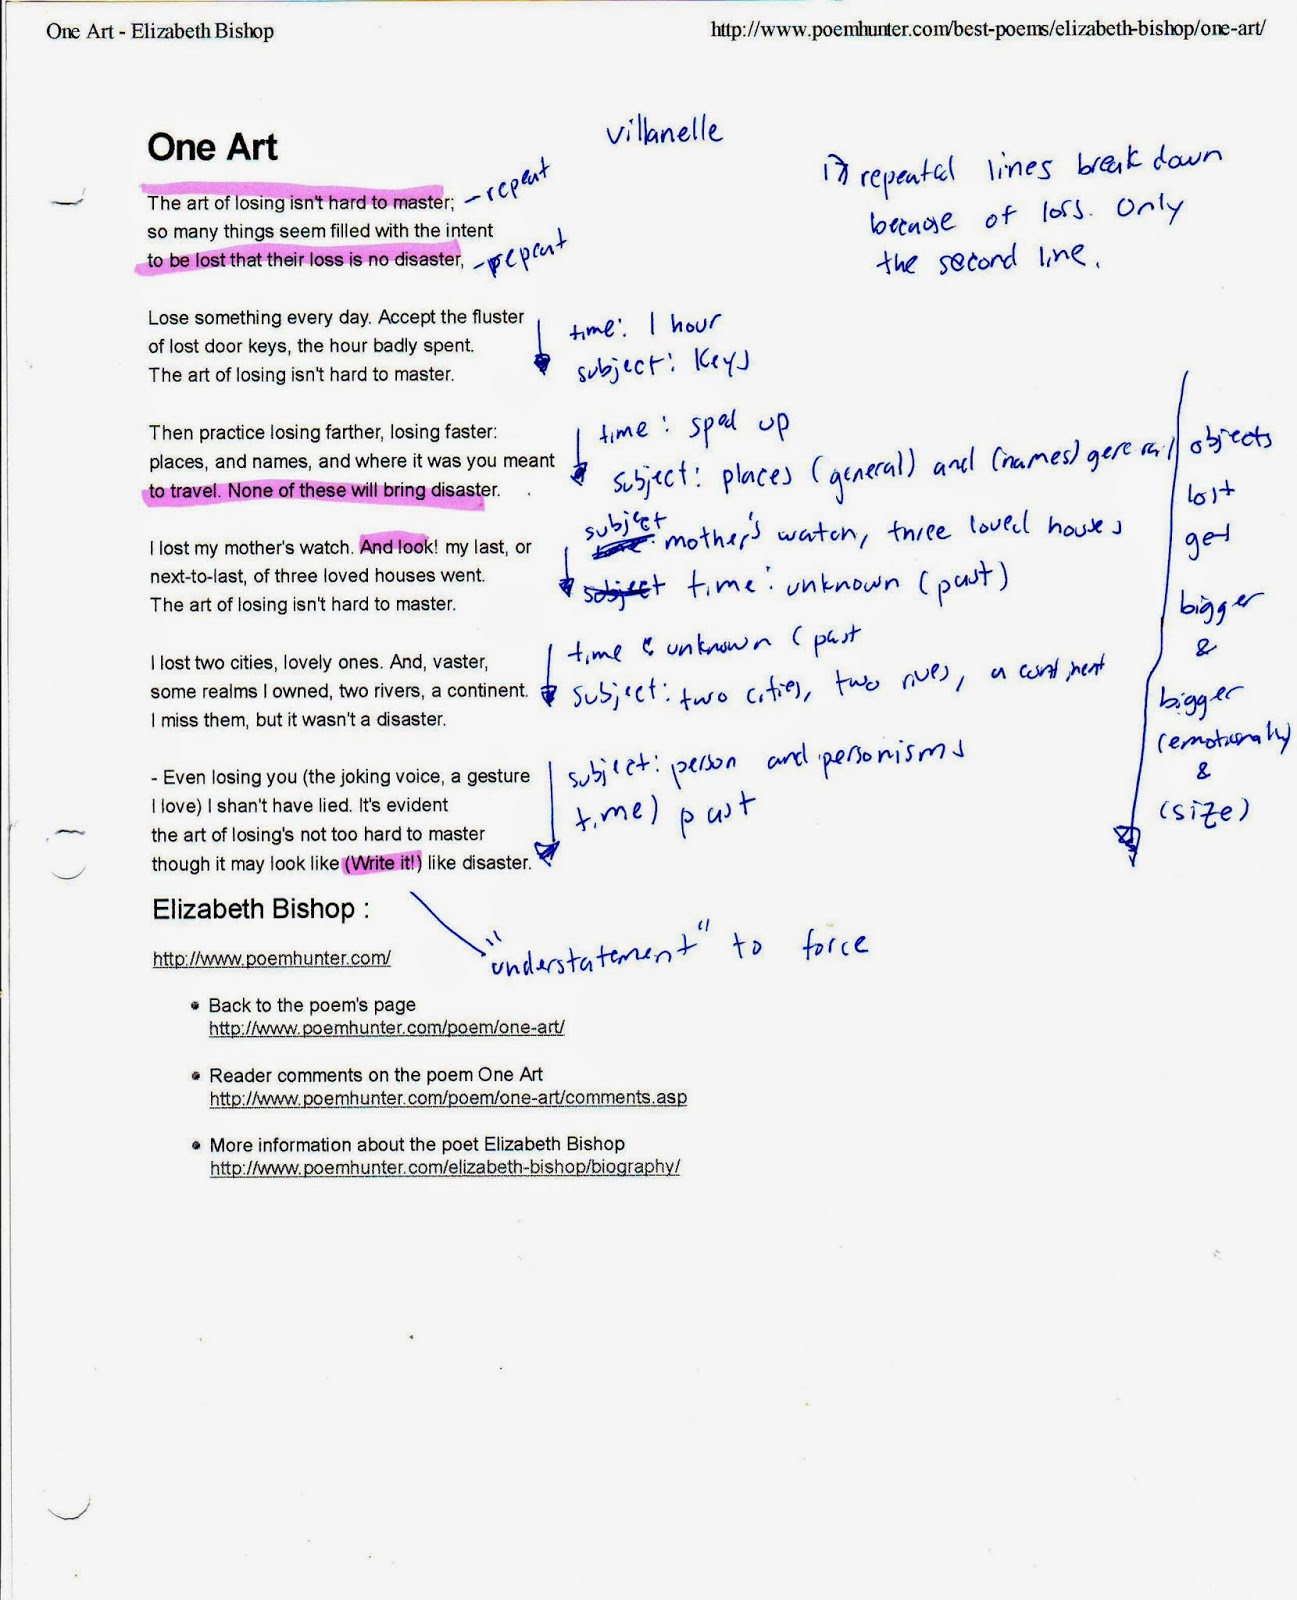 essay analysing poetry Essay analysing poetry, writing resources writing about poetry before you begin to organize your essay, read the poem aloud several times, noting its.